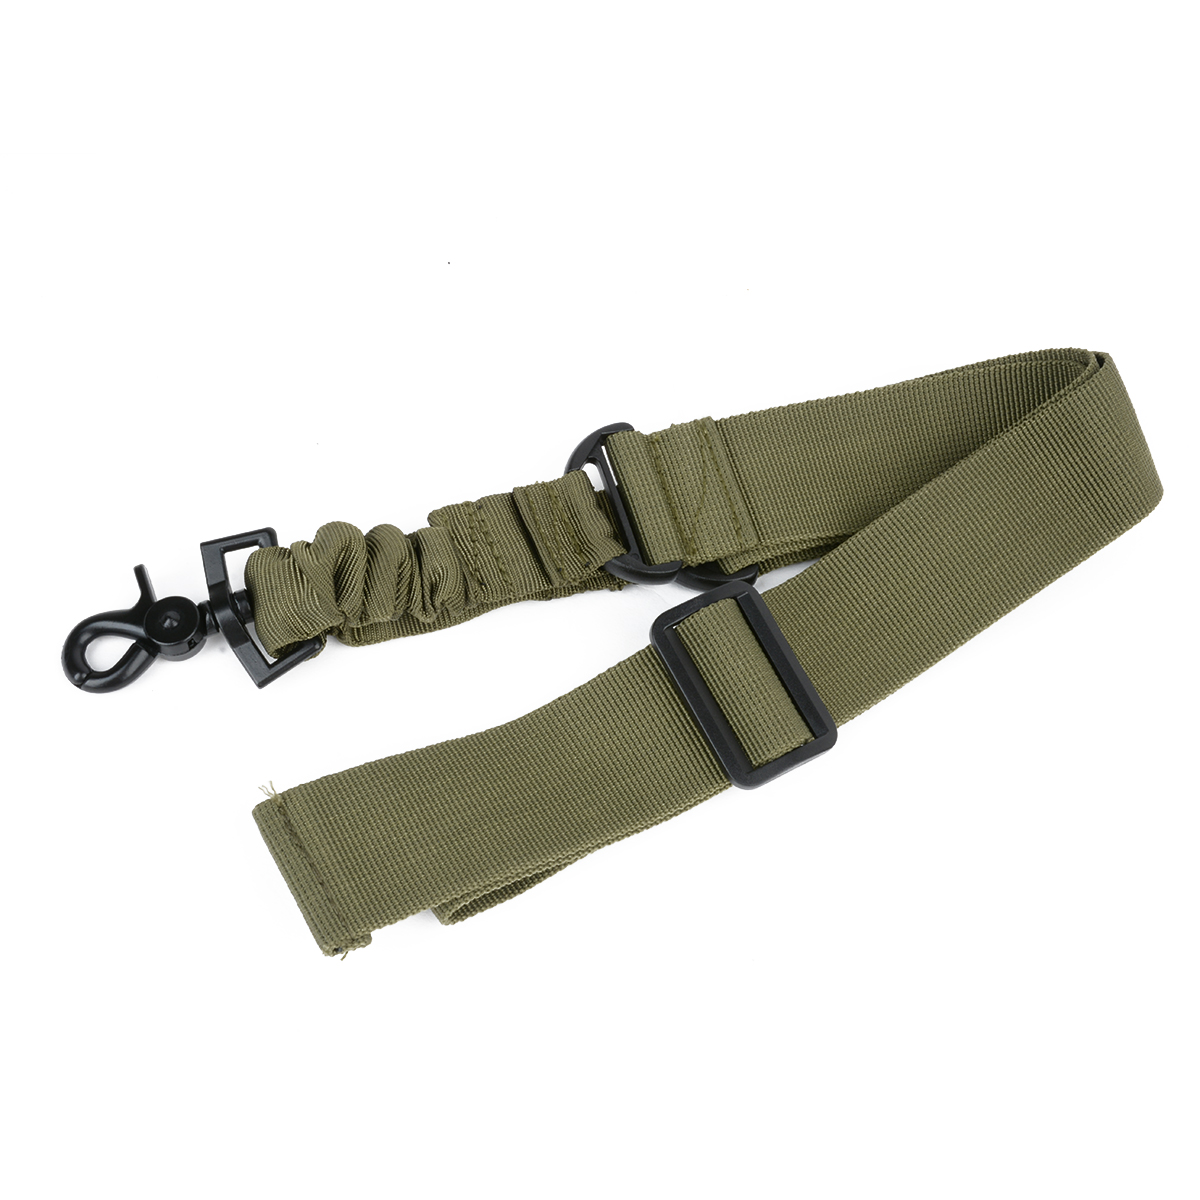 Mayitr Adjustable Tactical Gun Rifle Sling Strap 1 One Single Point Strap Safety Belt Rope with Metal Hook